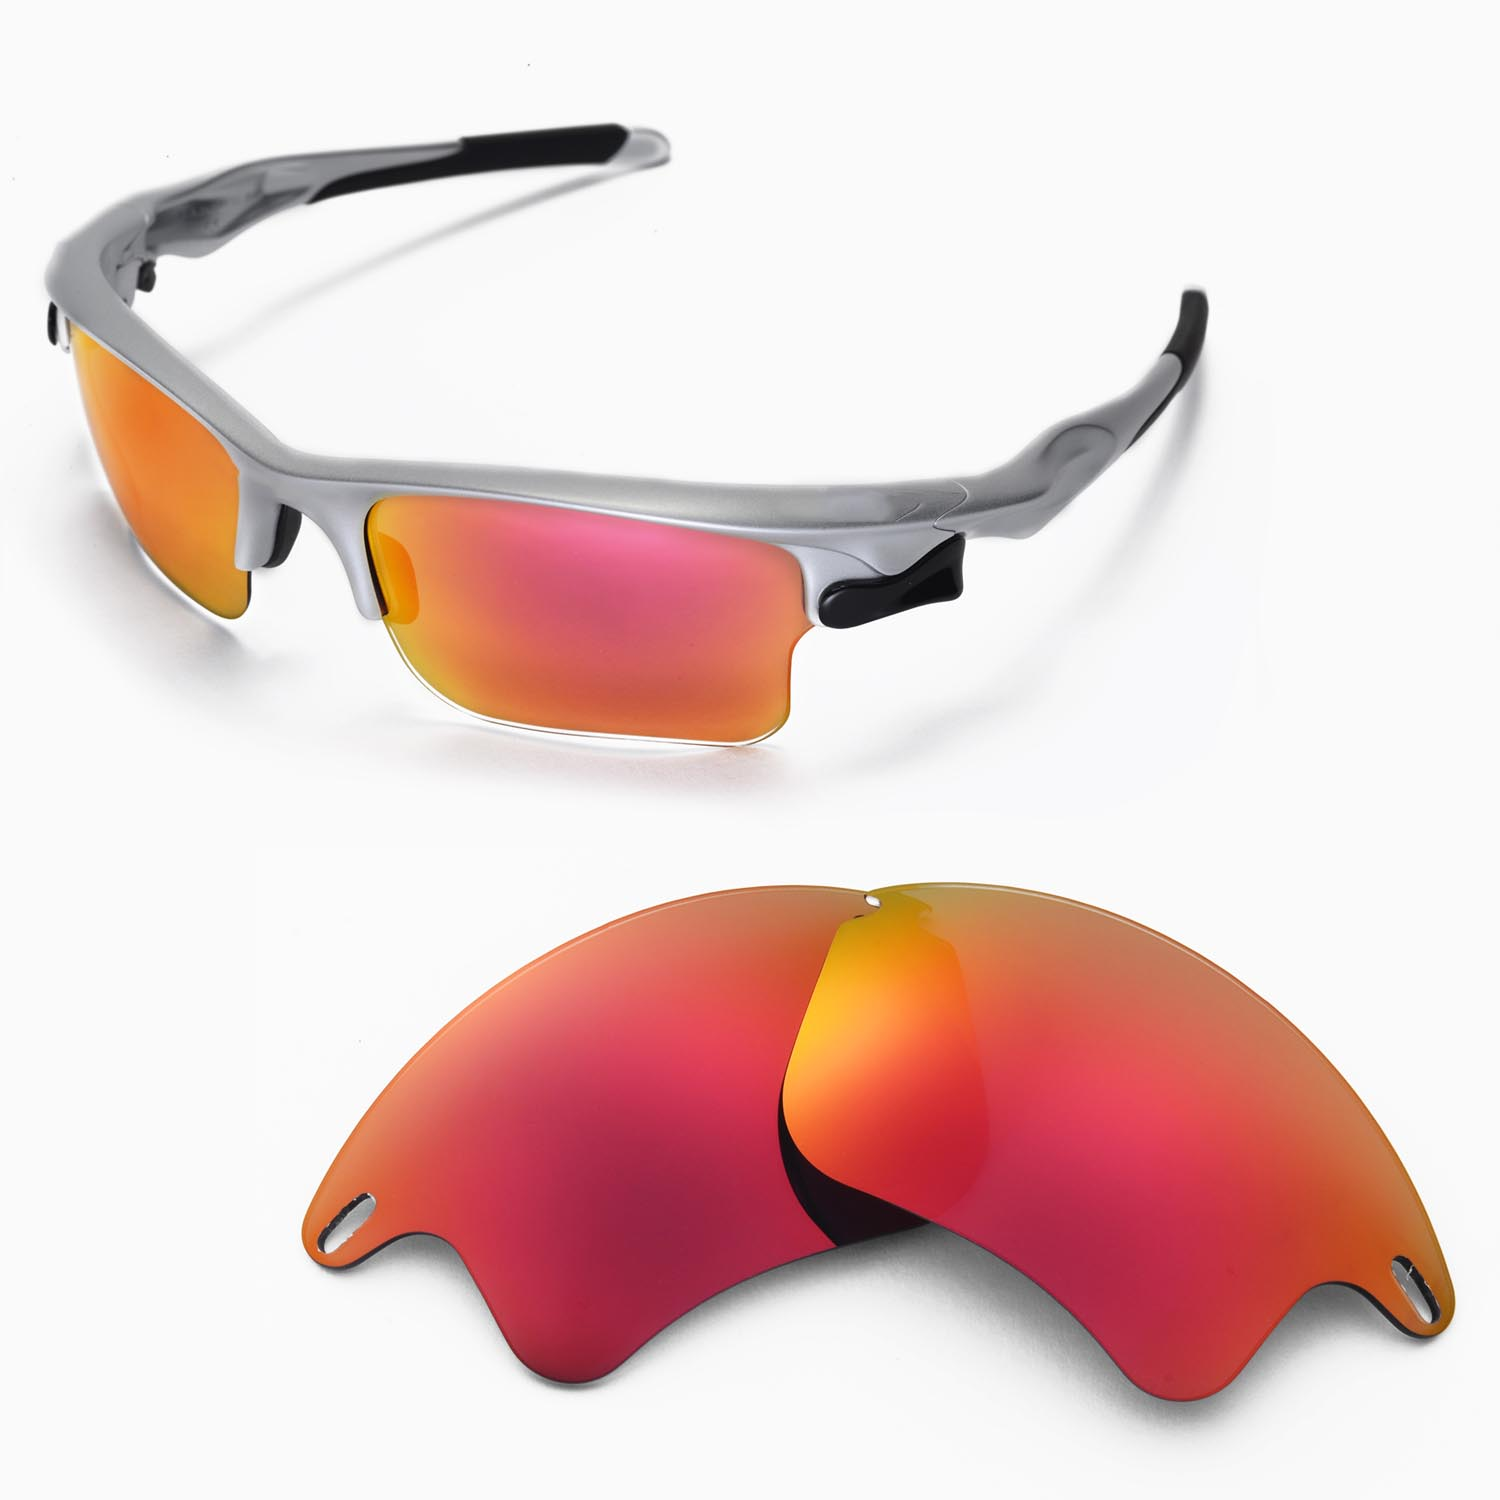 bd8e83fd68b Details about WL Polarized Fire Red Replacement Lenses For Oakley Fast  Jacket XL Sunglasses